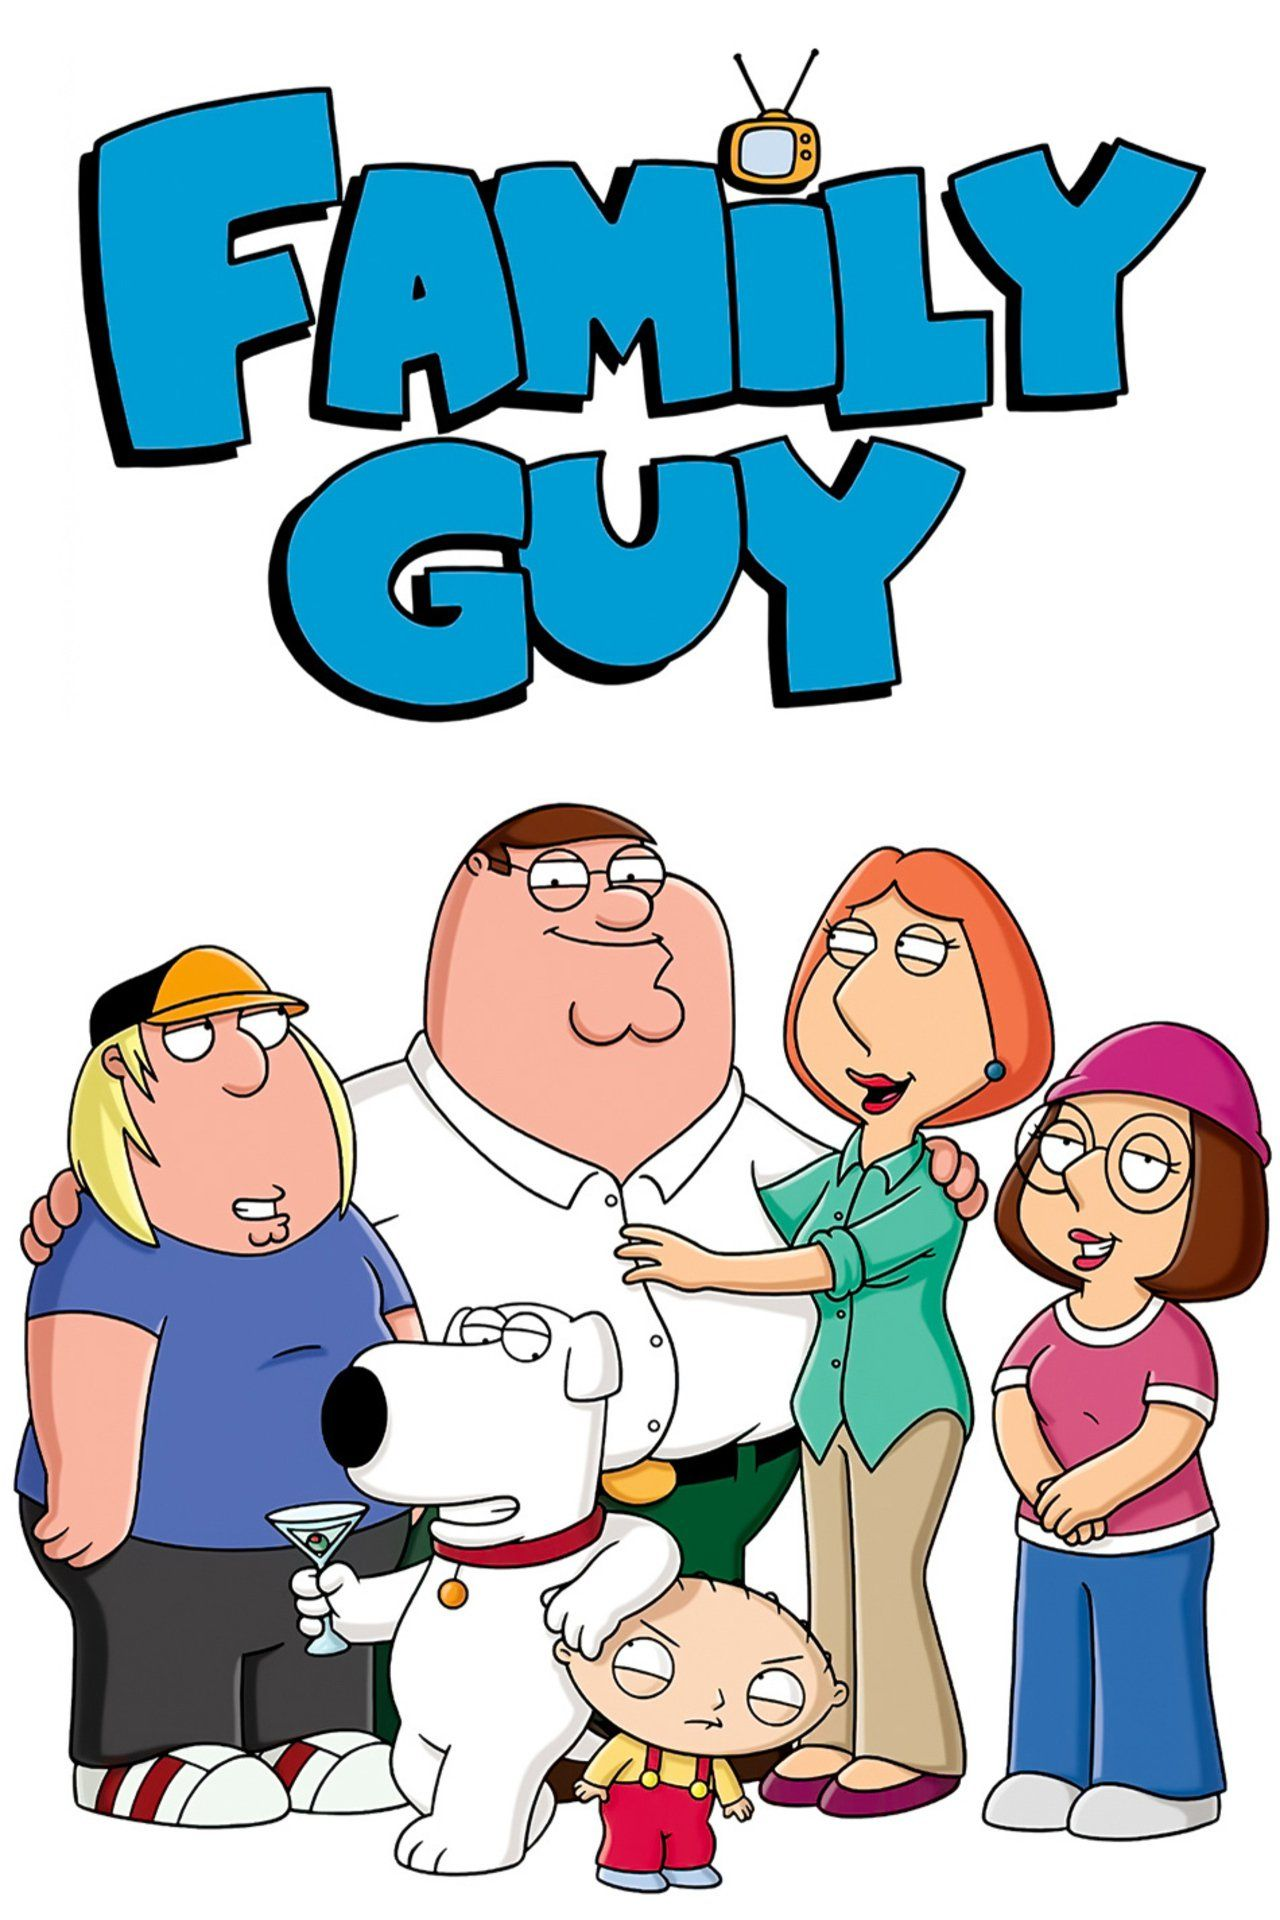 Peter Griffin Is The Father Of This Not Quite So Average Family